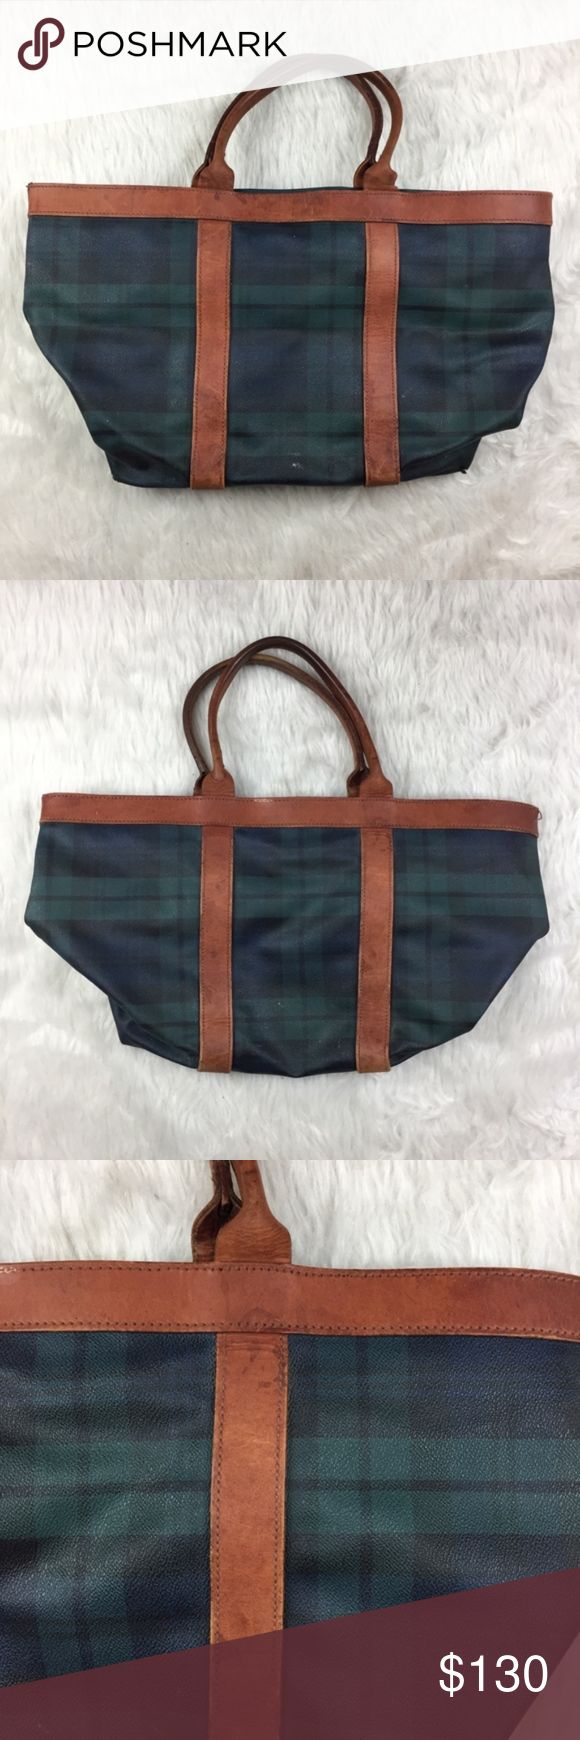 """RARE Vintage POLO RALPH LAUREN Travel Tote BAG Condition- Has some signs of wear on leather and interior. See pictures.     Measurements:  Height- 13""""  Length- 20""""  Depth- 7.5""""  Strap drop- 8"""" Polo by Ralph Lauren Bags Totes"""